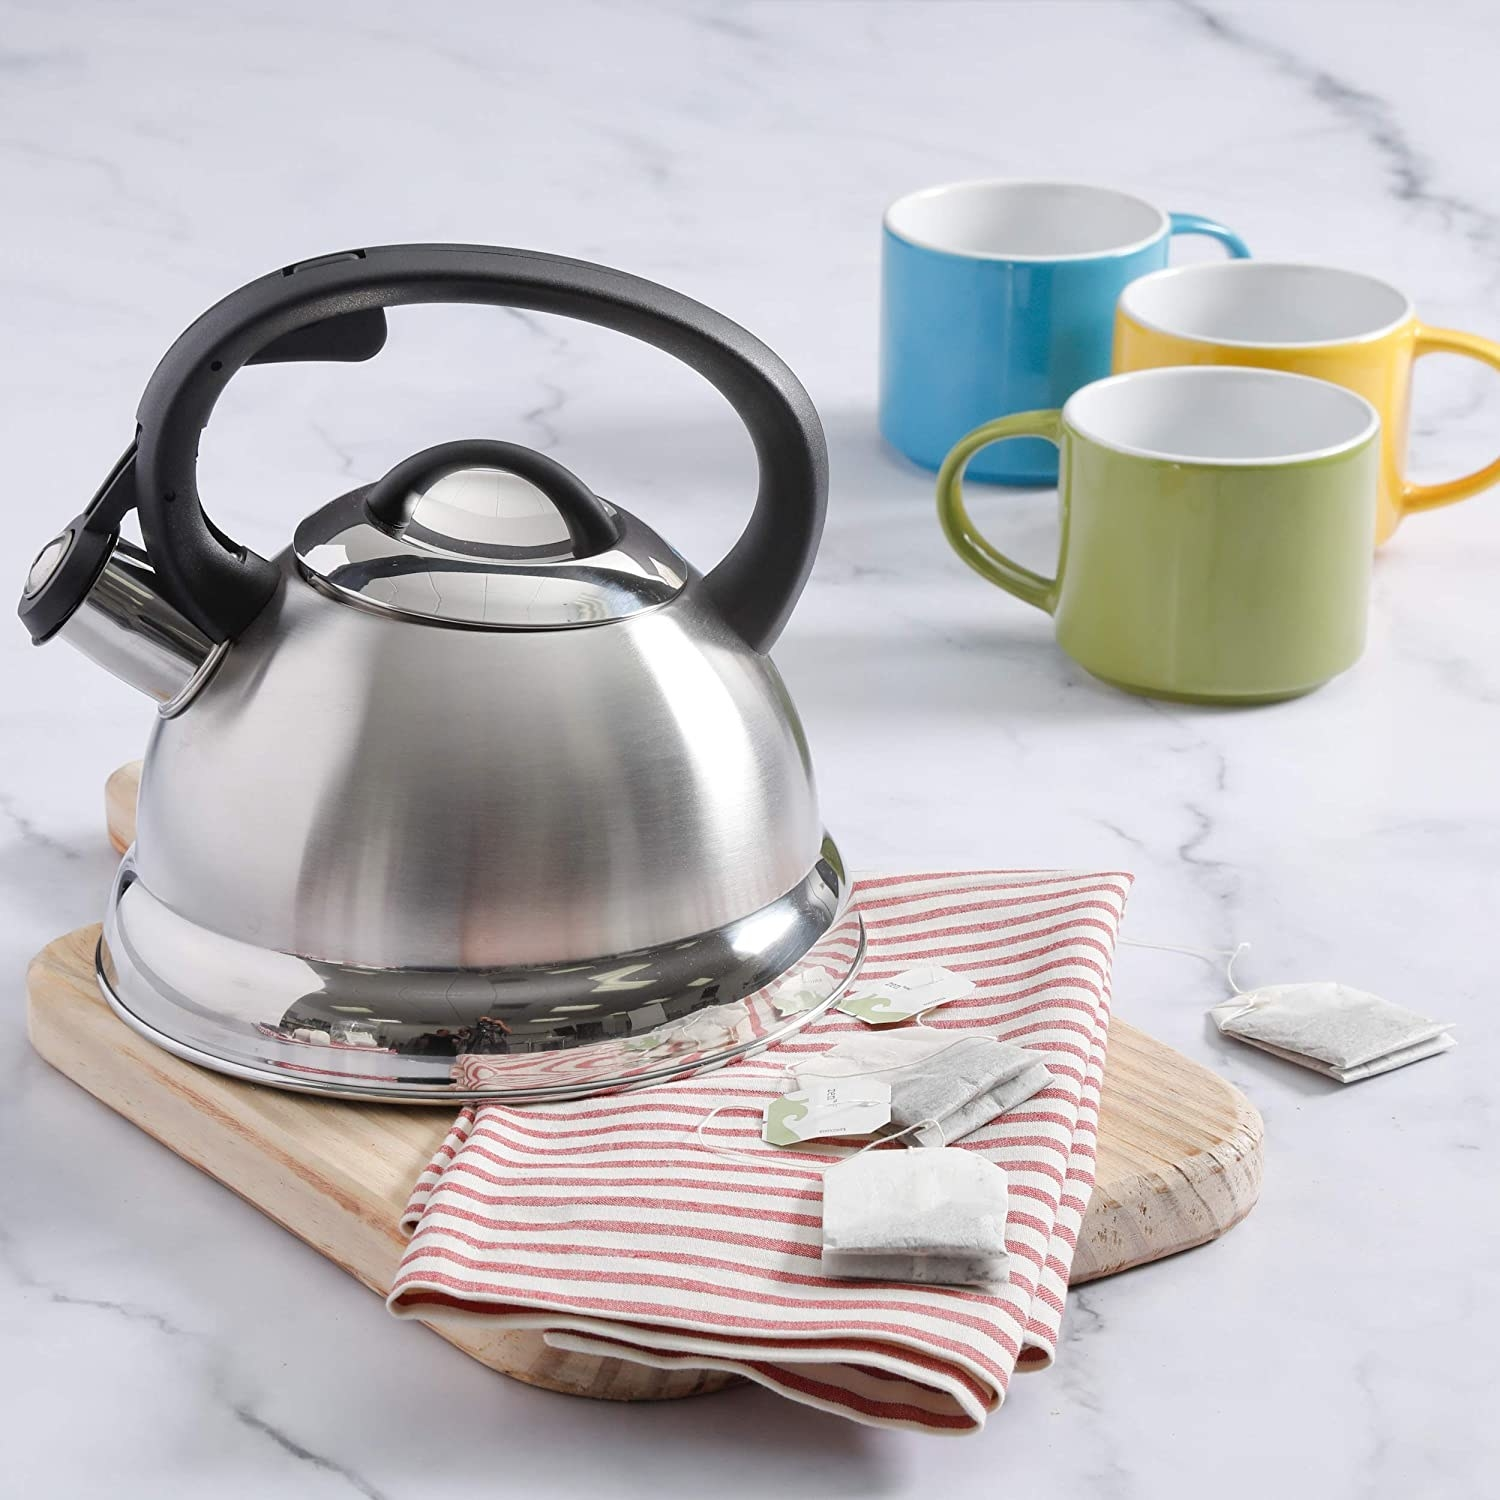 A kettle on a cutting board with tea bags